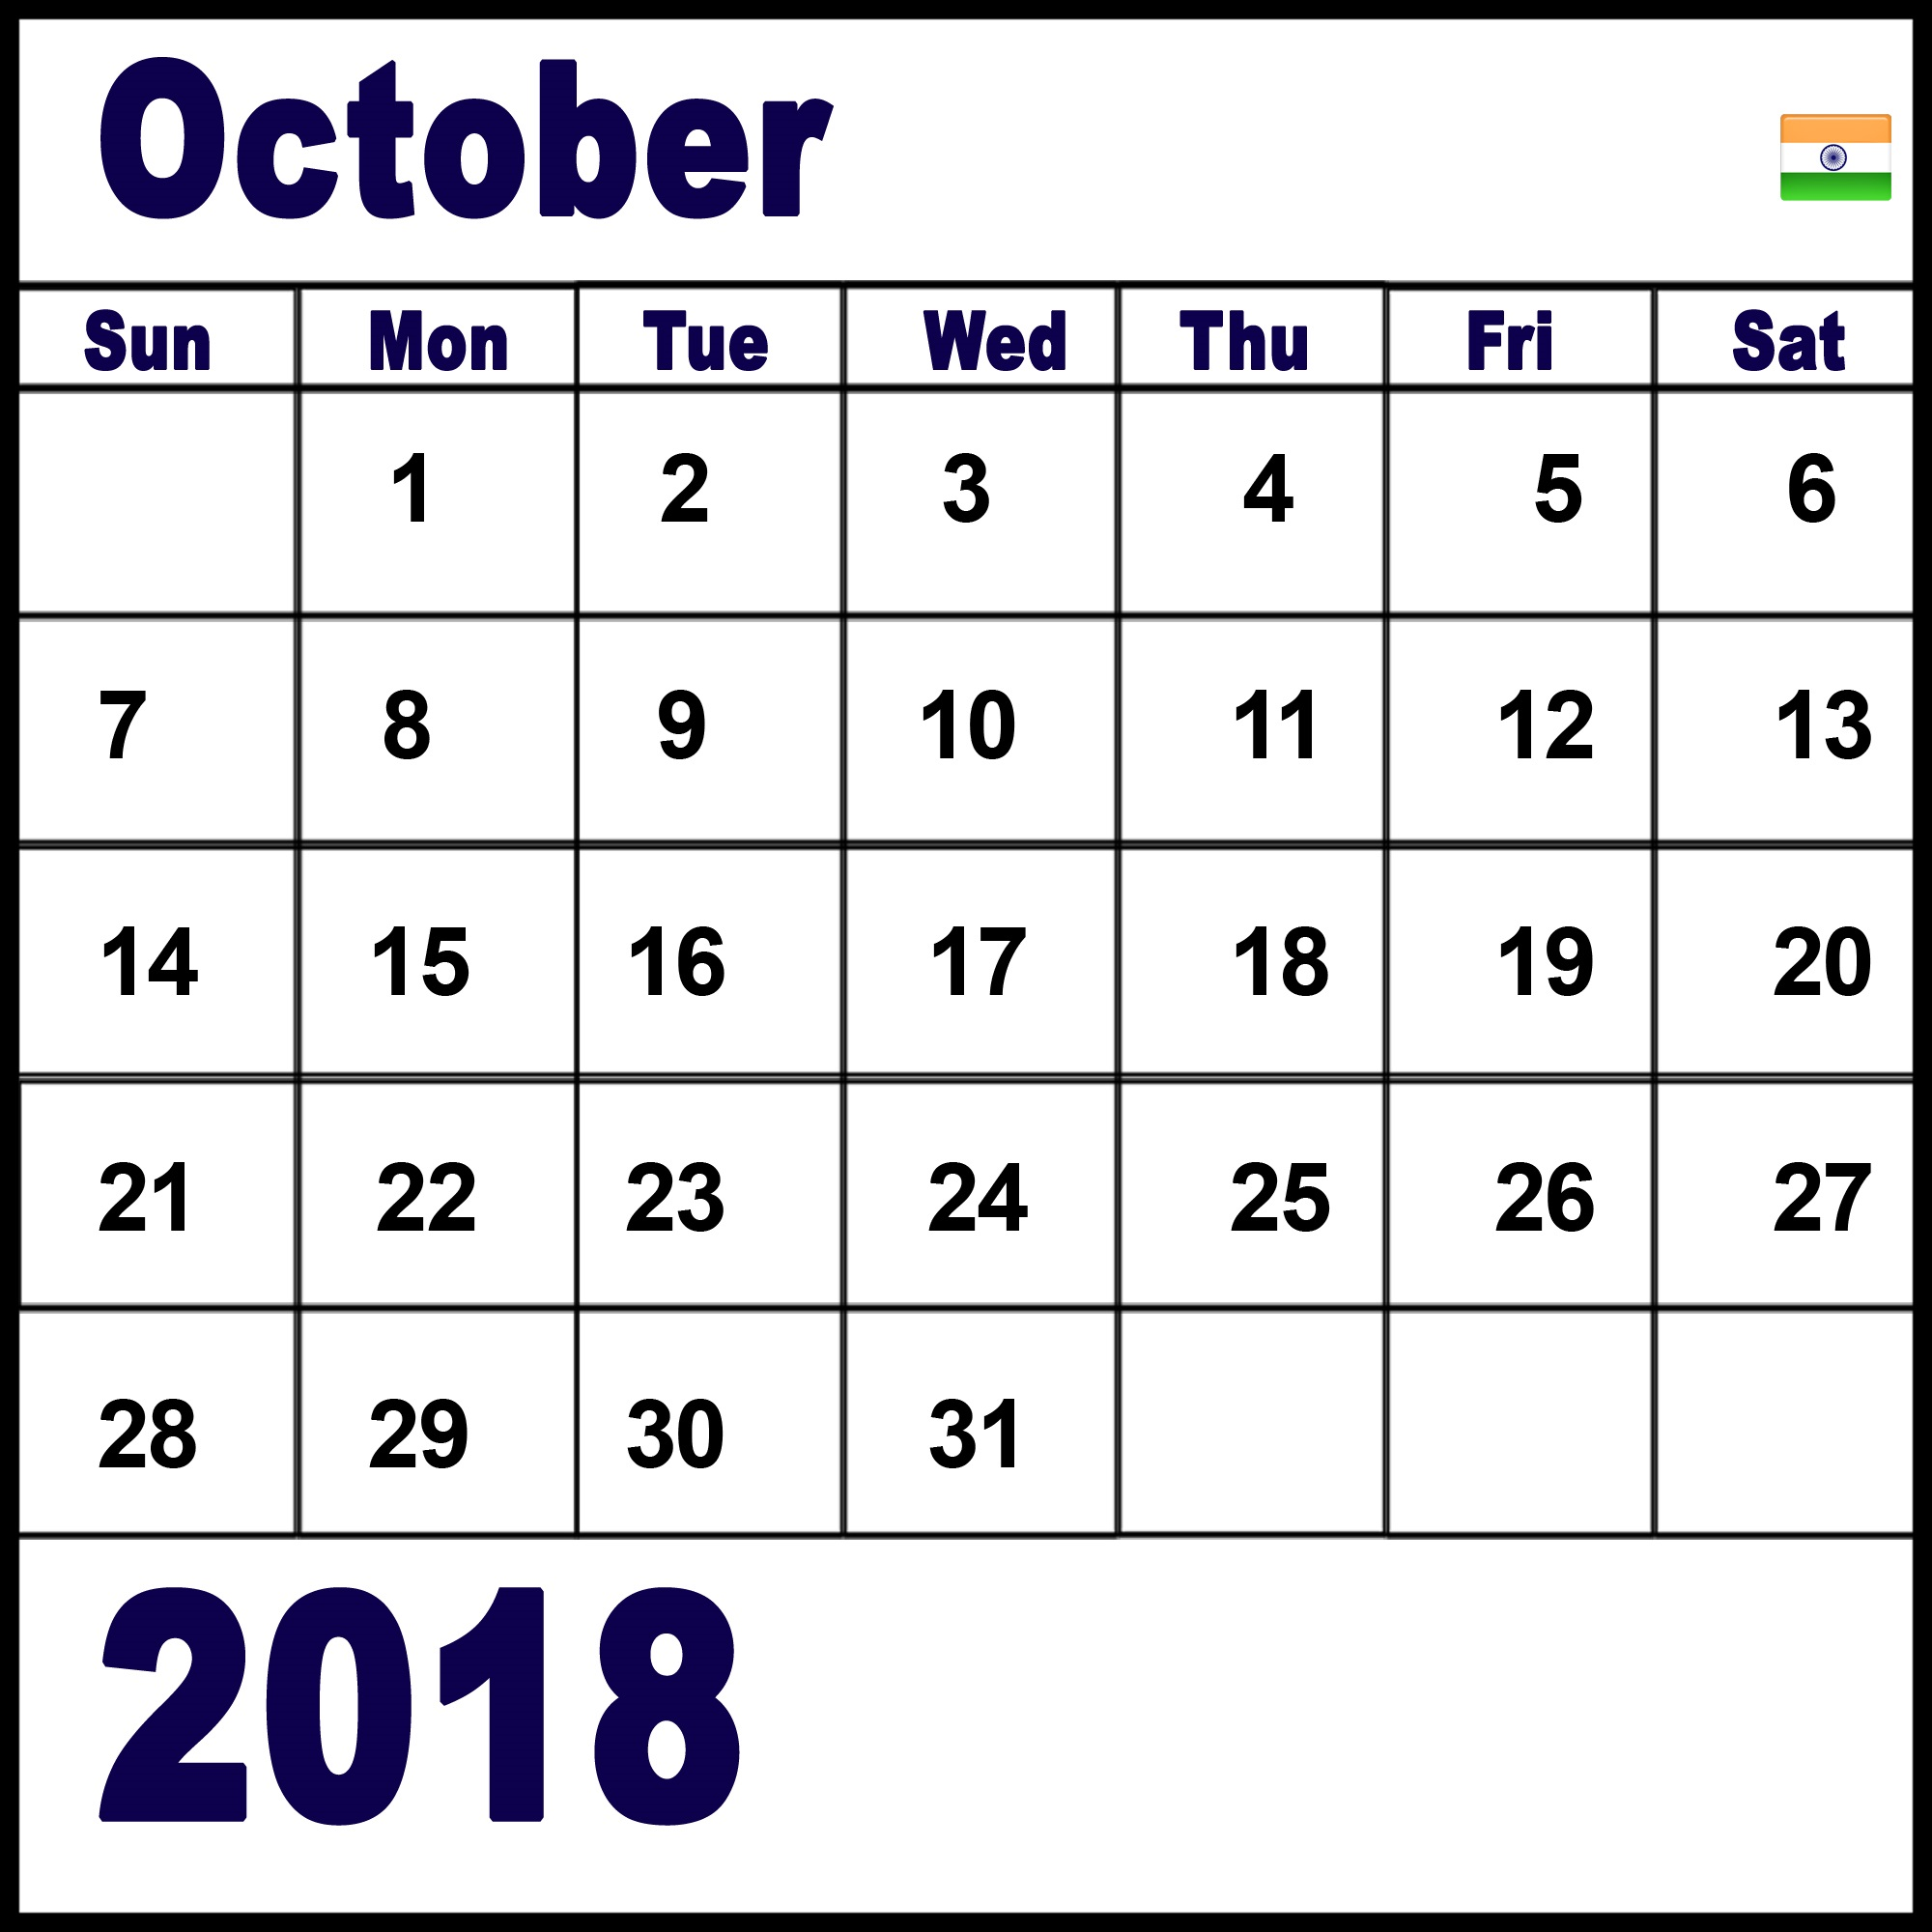 October 2018 Calendar India Download HTML